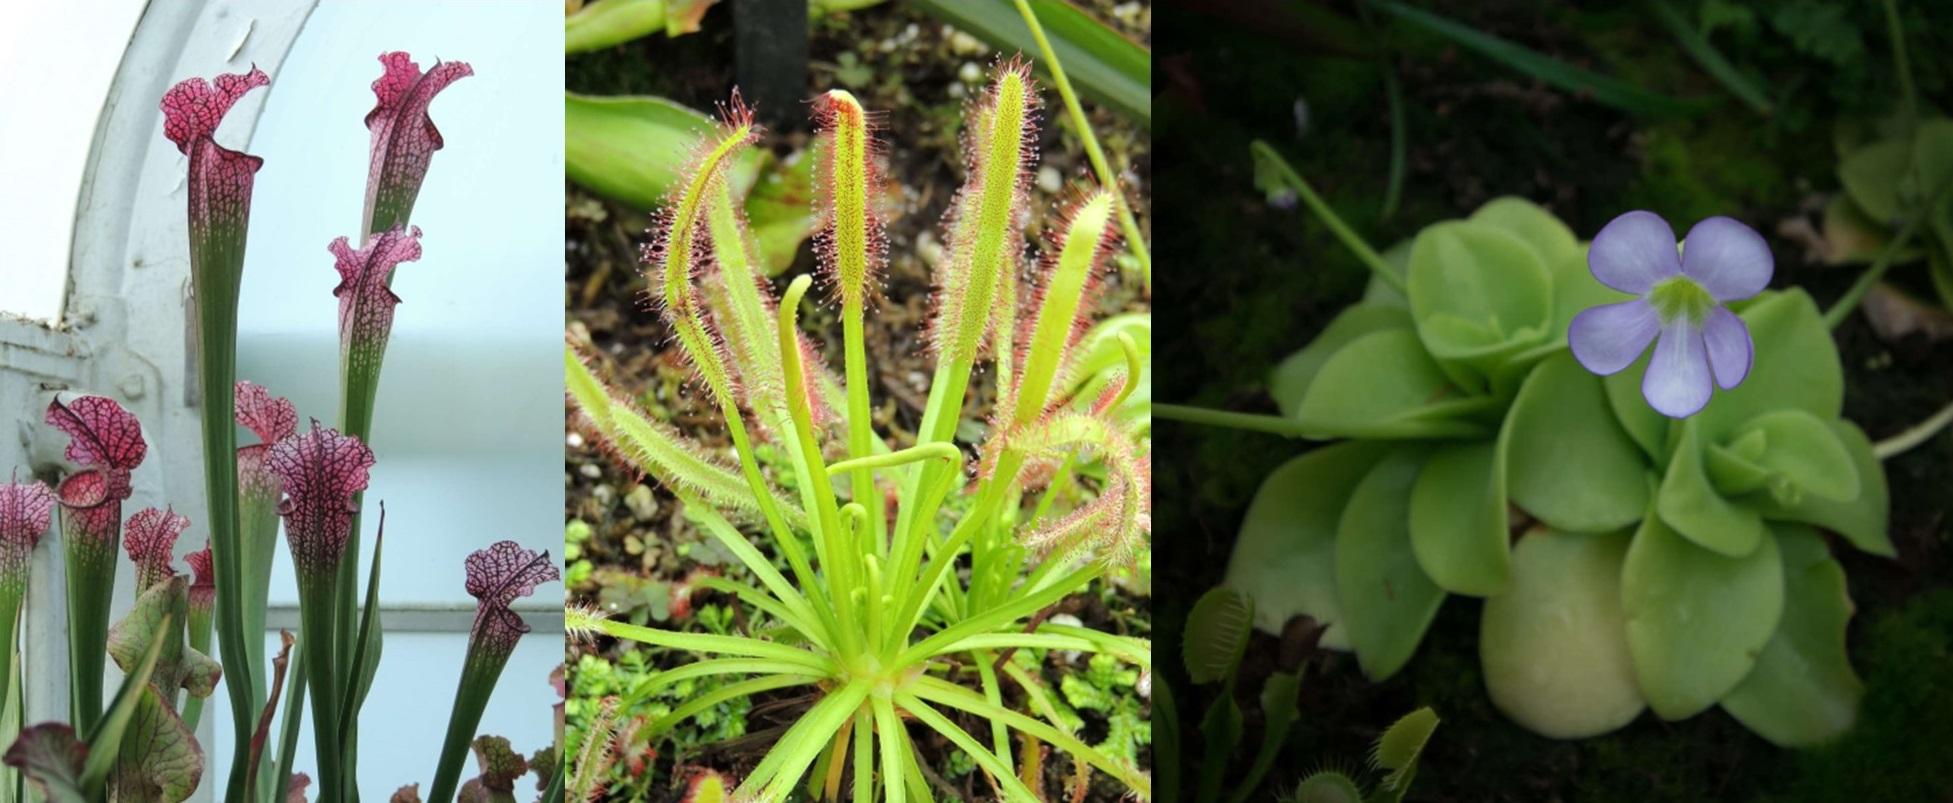 Left: Sarracenia (North American pitcher-plant) in a 2013 photo. Center: Drosera capensis (Cape sundew) in a 2013 photo. Left: Pinguicula primuliflora (southern butterwort) in a 2019 photo. All photos were taken in our Fern Passage. Left and center photos by Cathy Matos; right photo by Duane Erdmann.